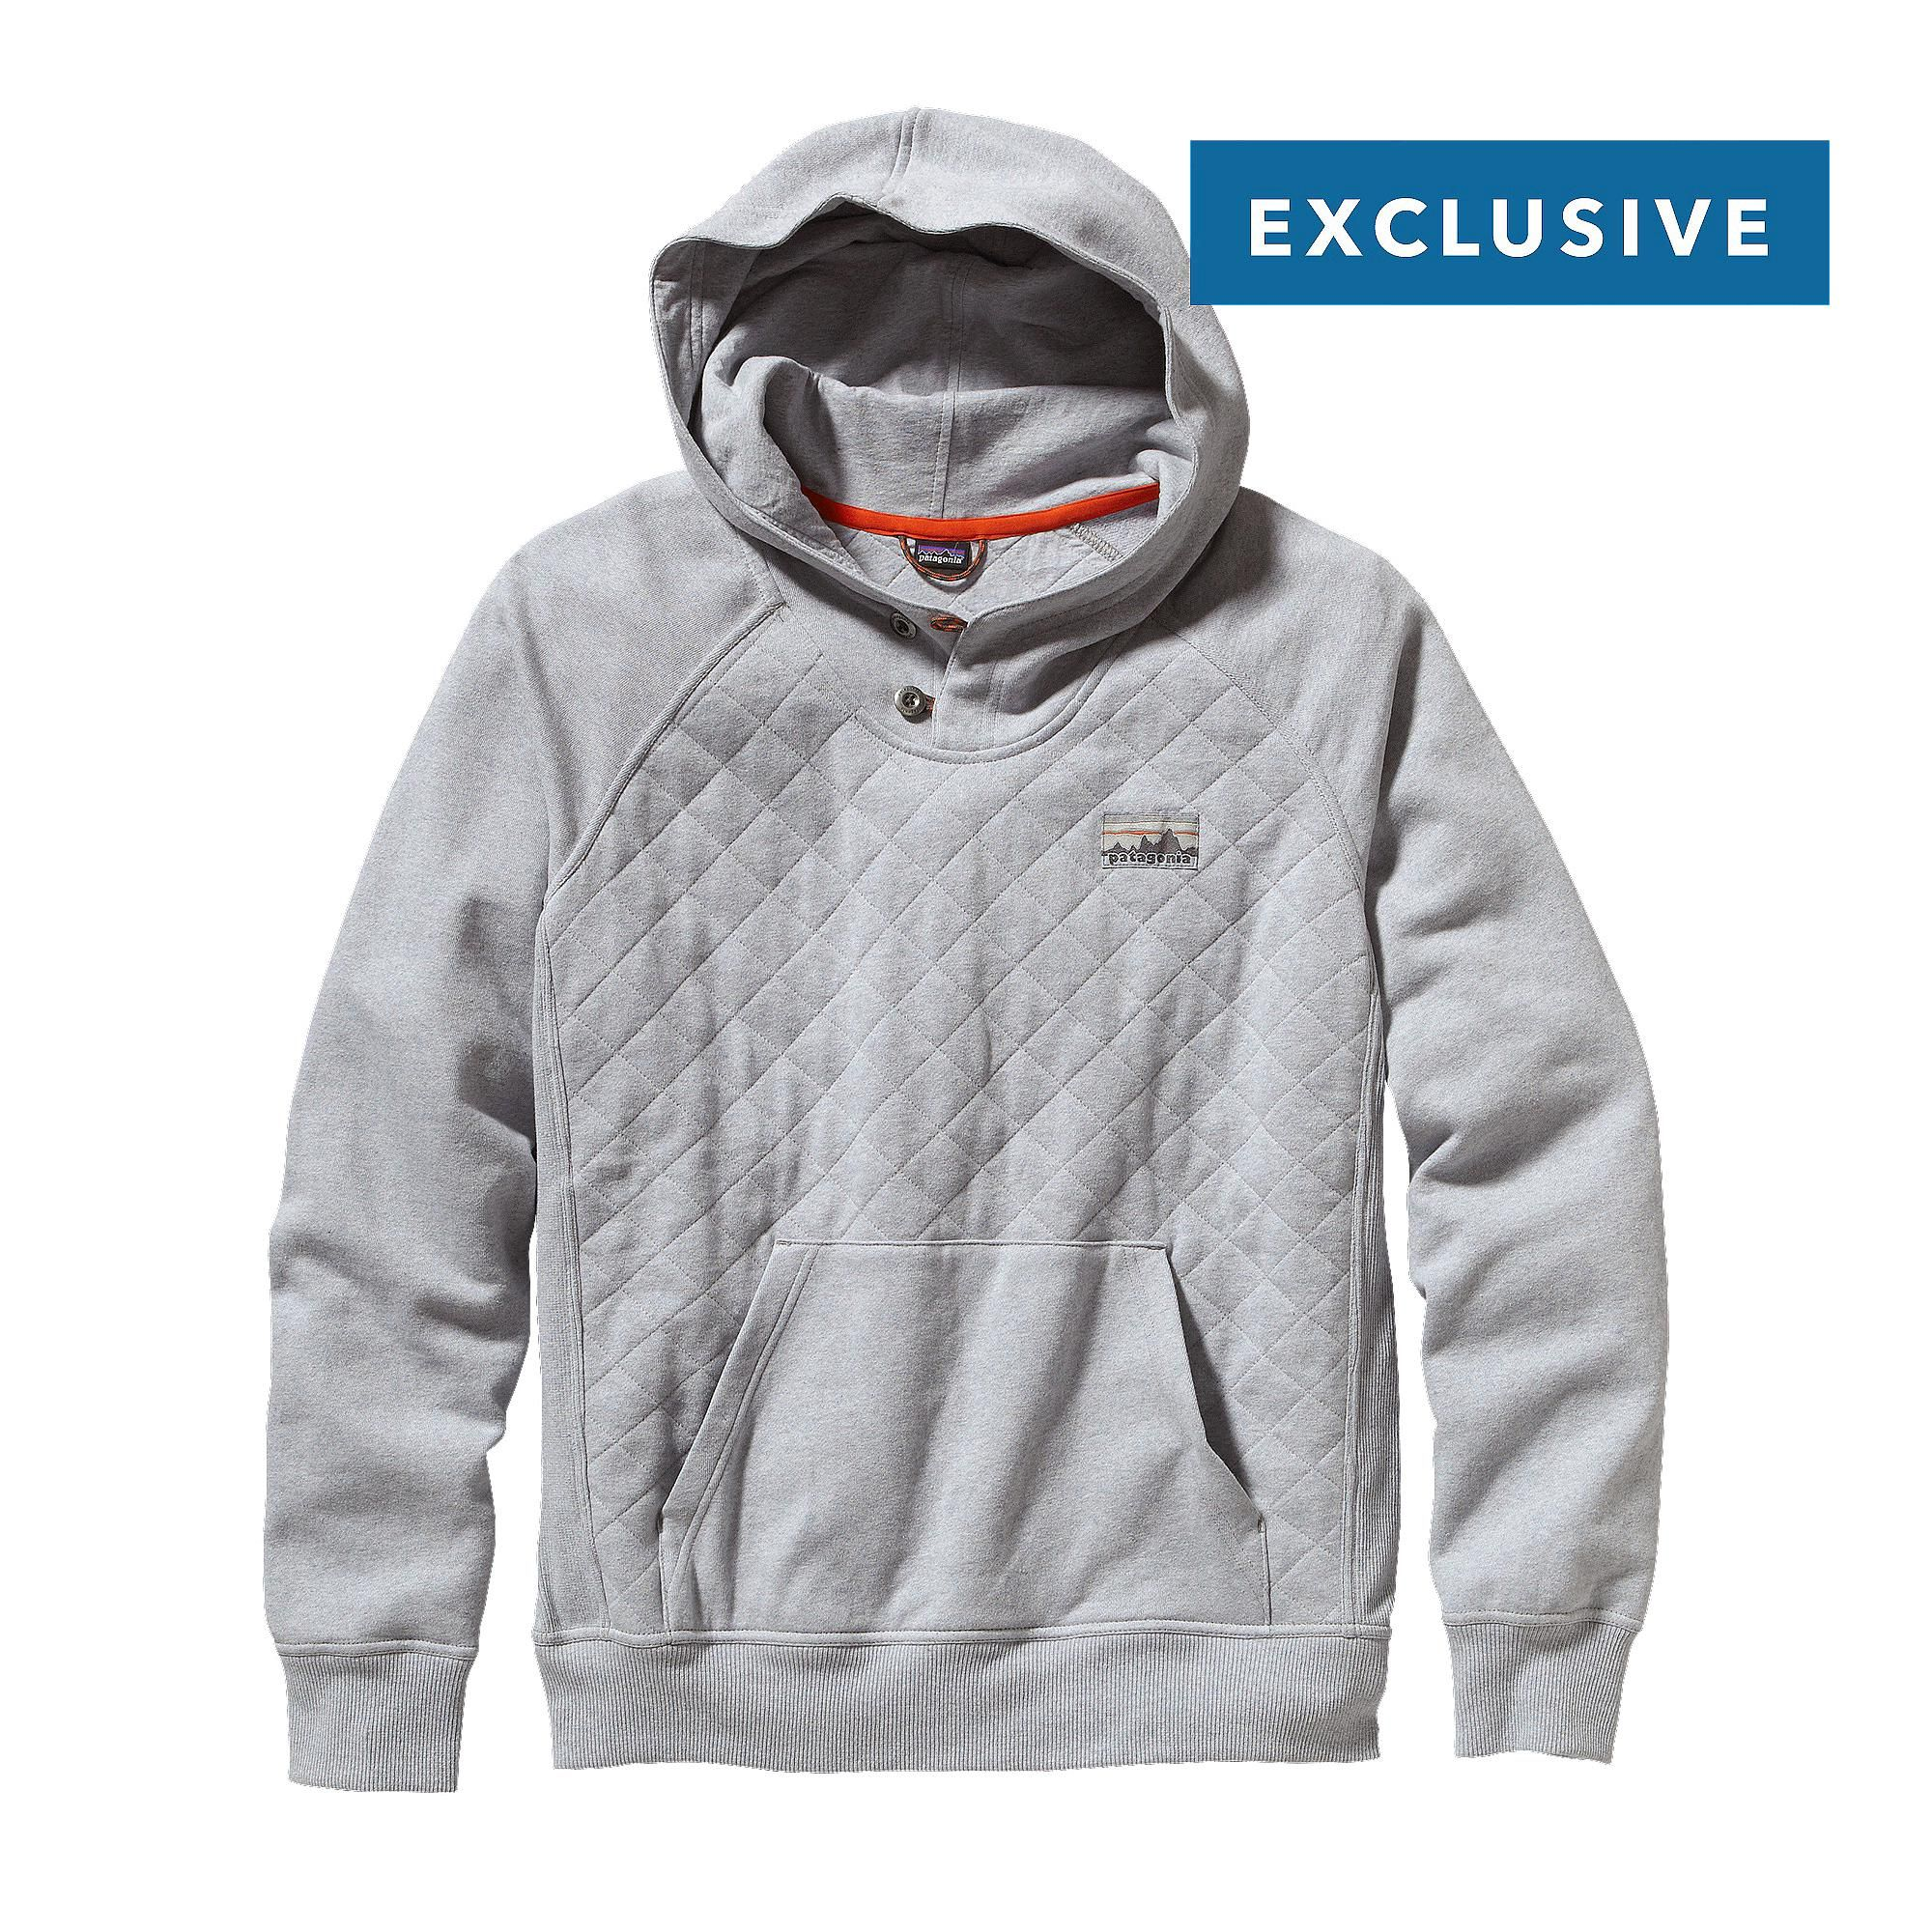 From scrap to finish: the Patagonia Women's Reclaimed Cotton Hoody ... : patagonia quilted jacket - Adamdwight.com